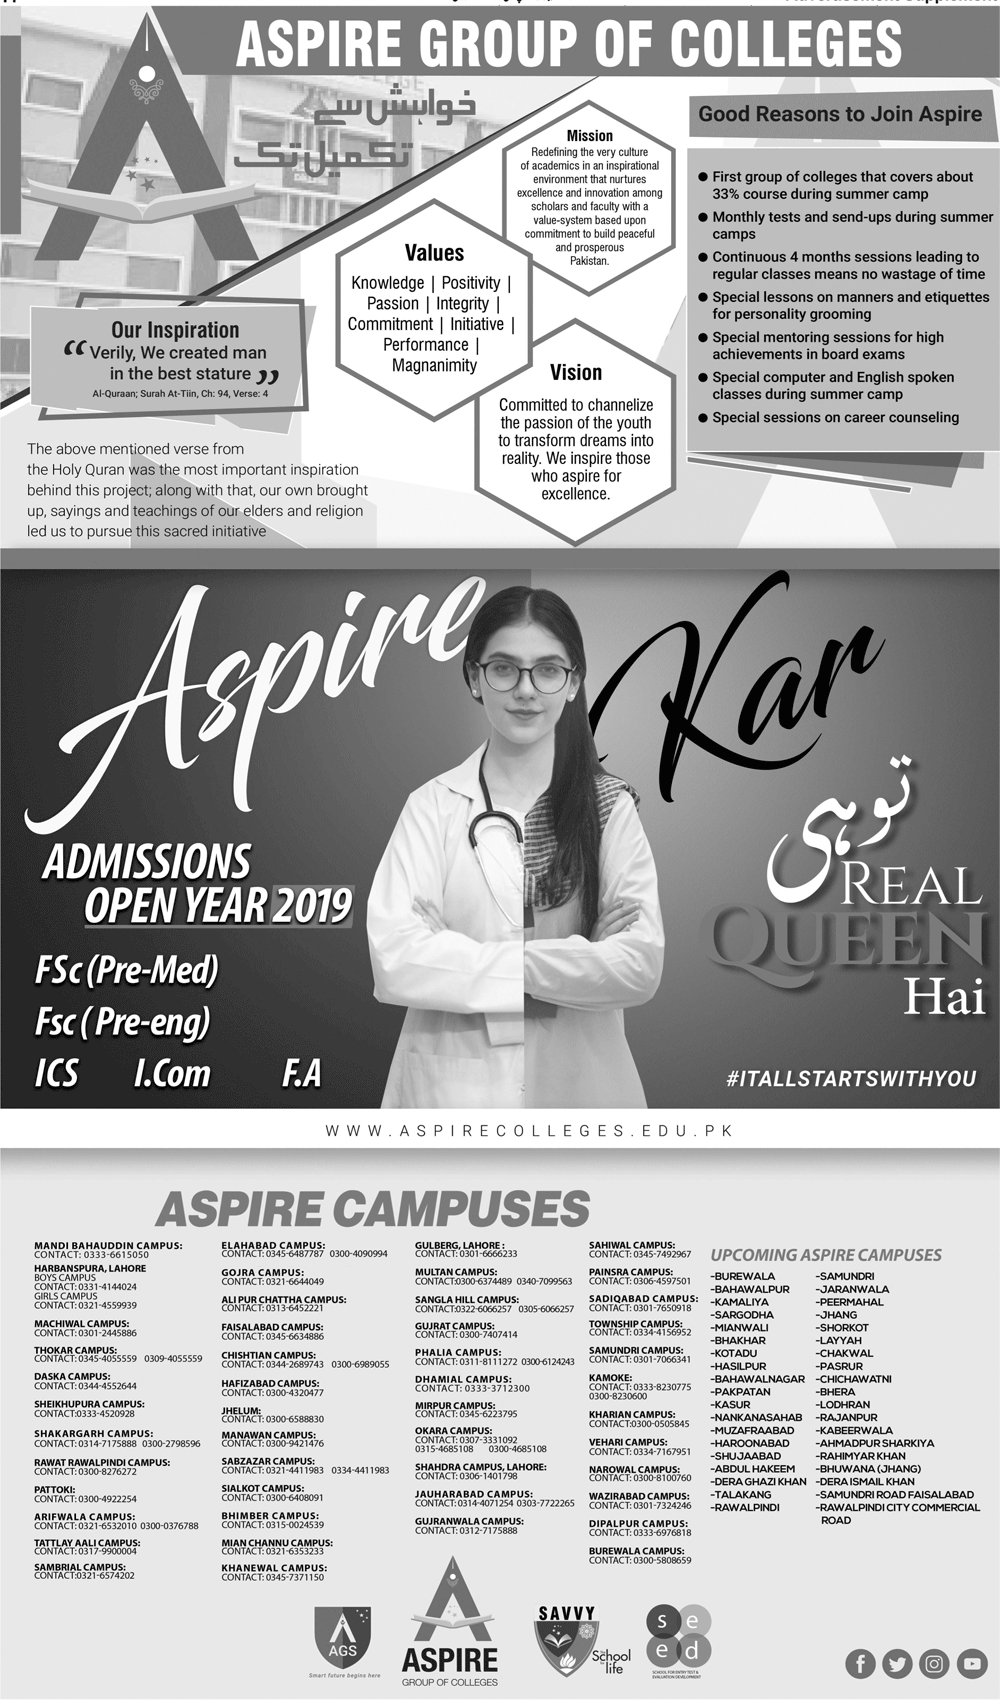 Aspire Group of Colleges Inter Admission 2019-Scholarships